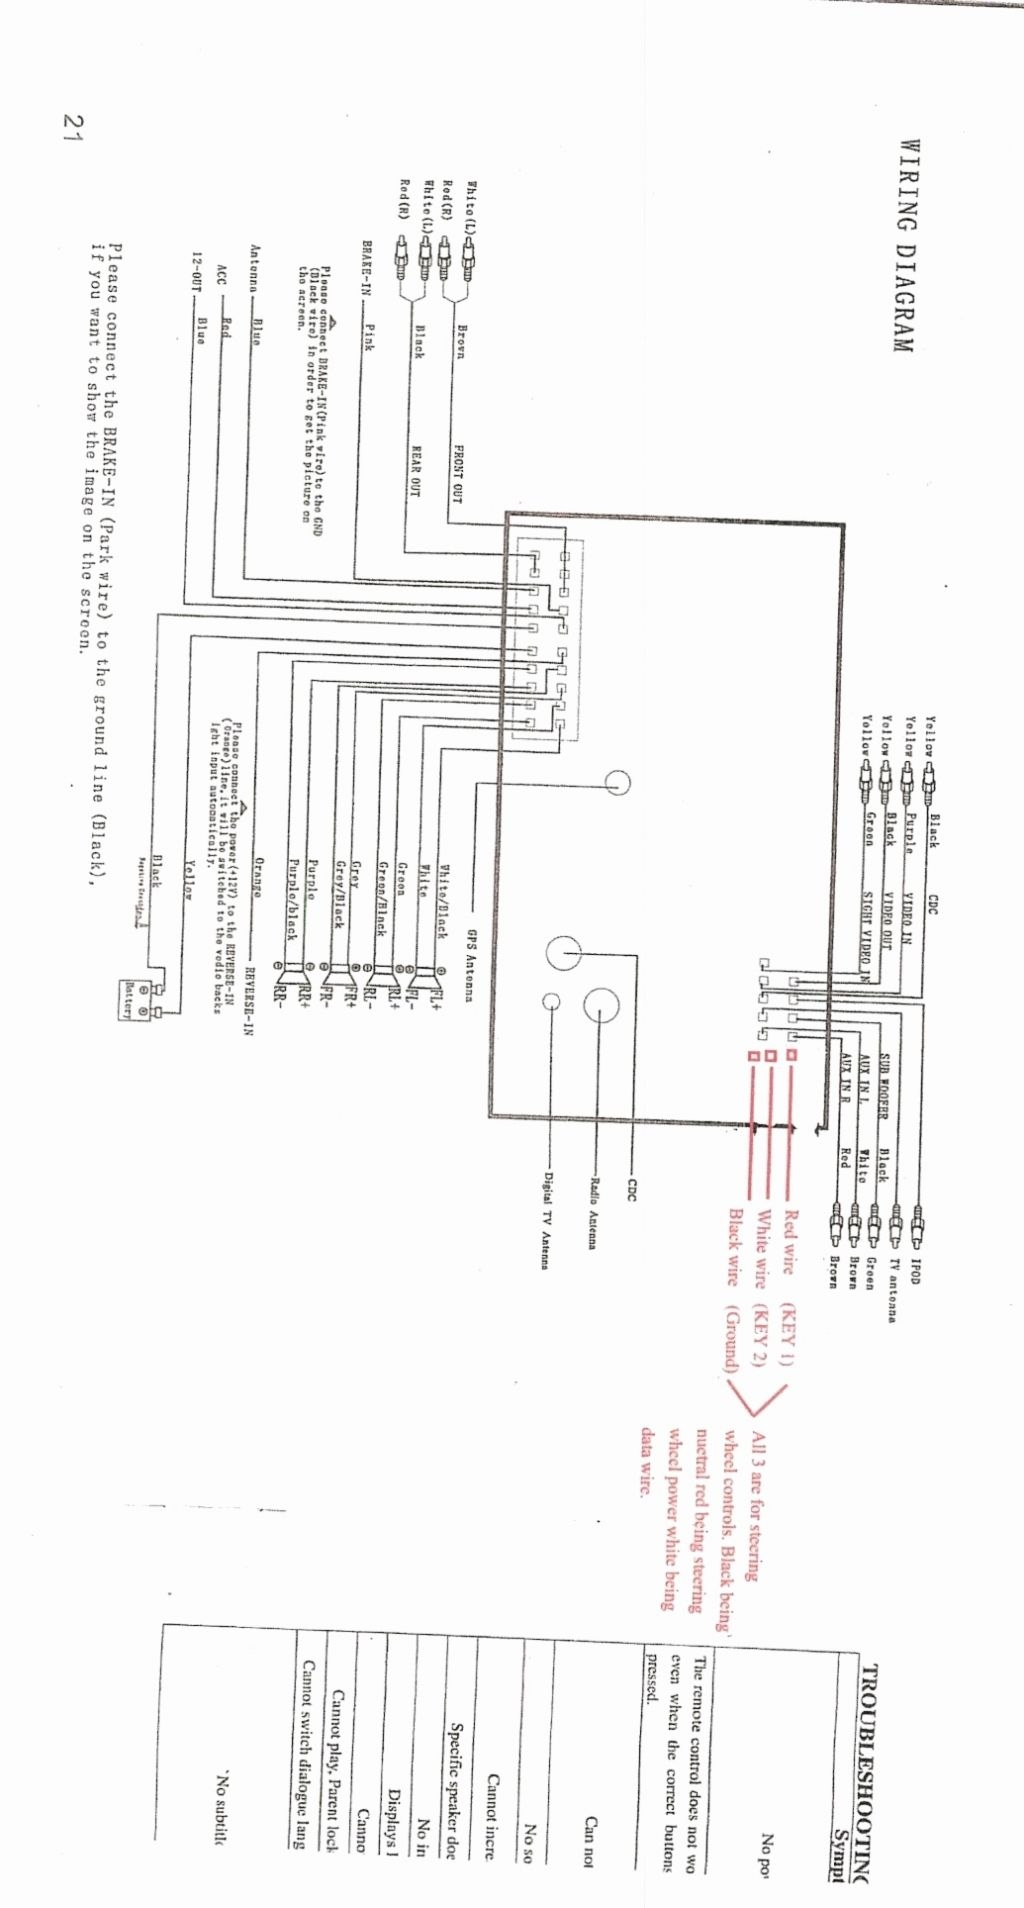 Gmos 04 Wiring Diagram | Wiring Diagram Gmos Wiring Diagram on gmos-04 harness, gmos-04 pin diagram, r crew harness diagram, gmos-04 installation, gmos-04 manual, gmos-04 stereo plug, 2005 chevy silverado interior parts diagram, gmos-04 axxess work on 2001 impala, 2005 chevy trailblazer bose radio wire diagram,